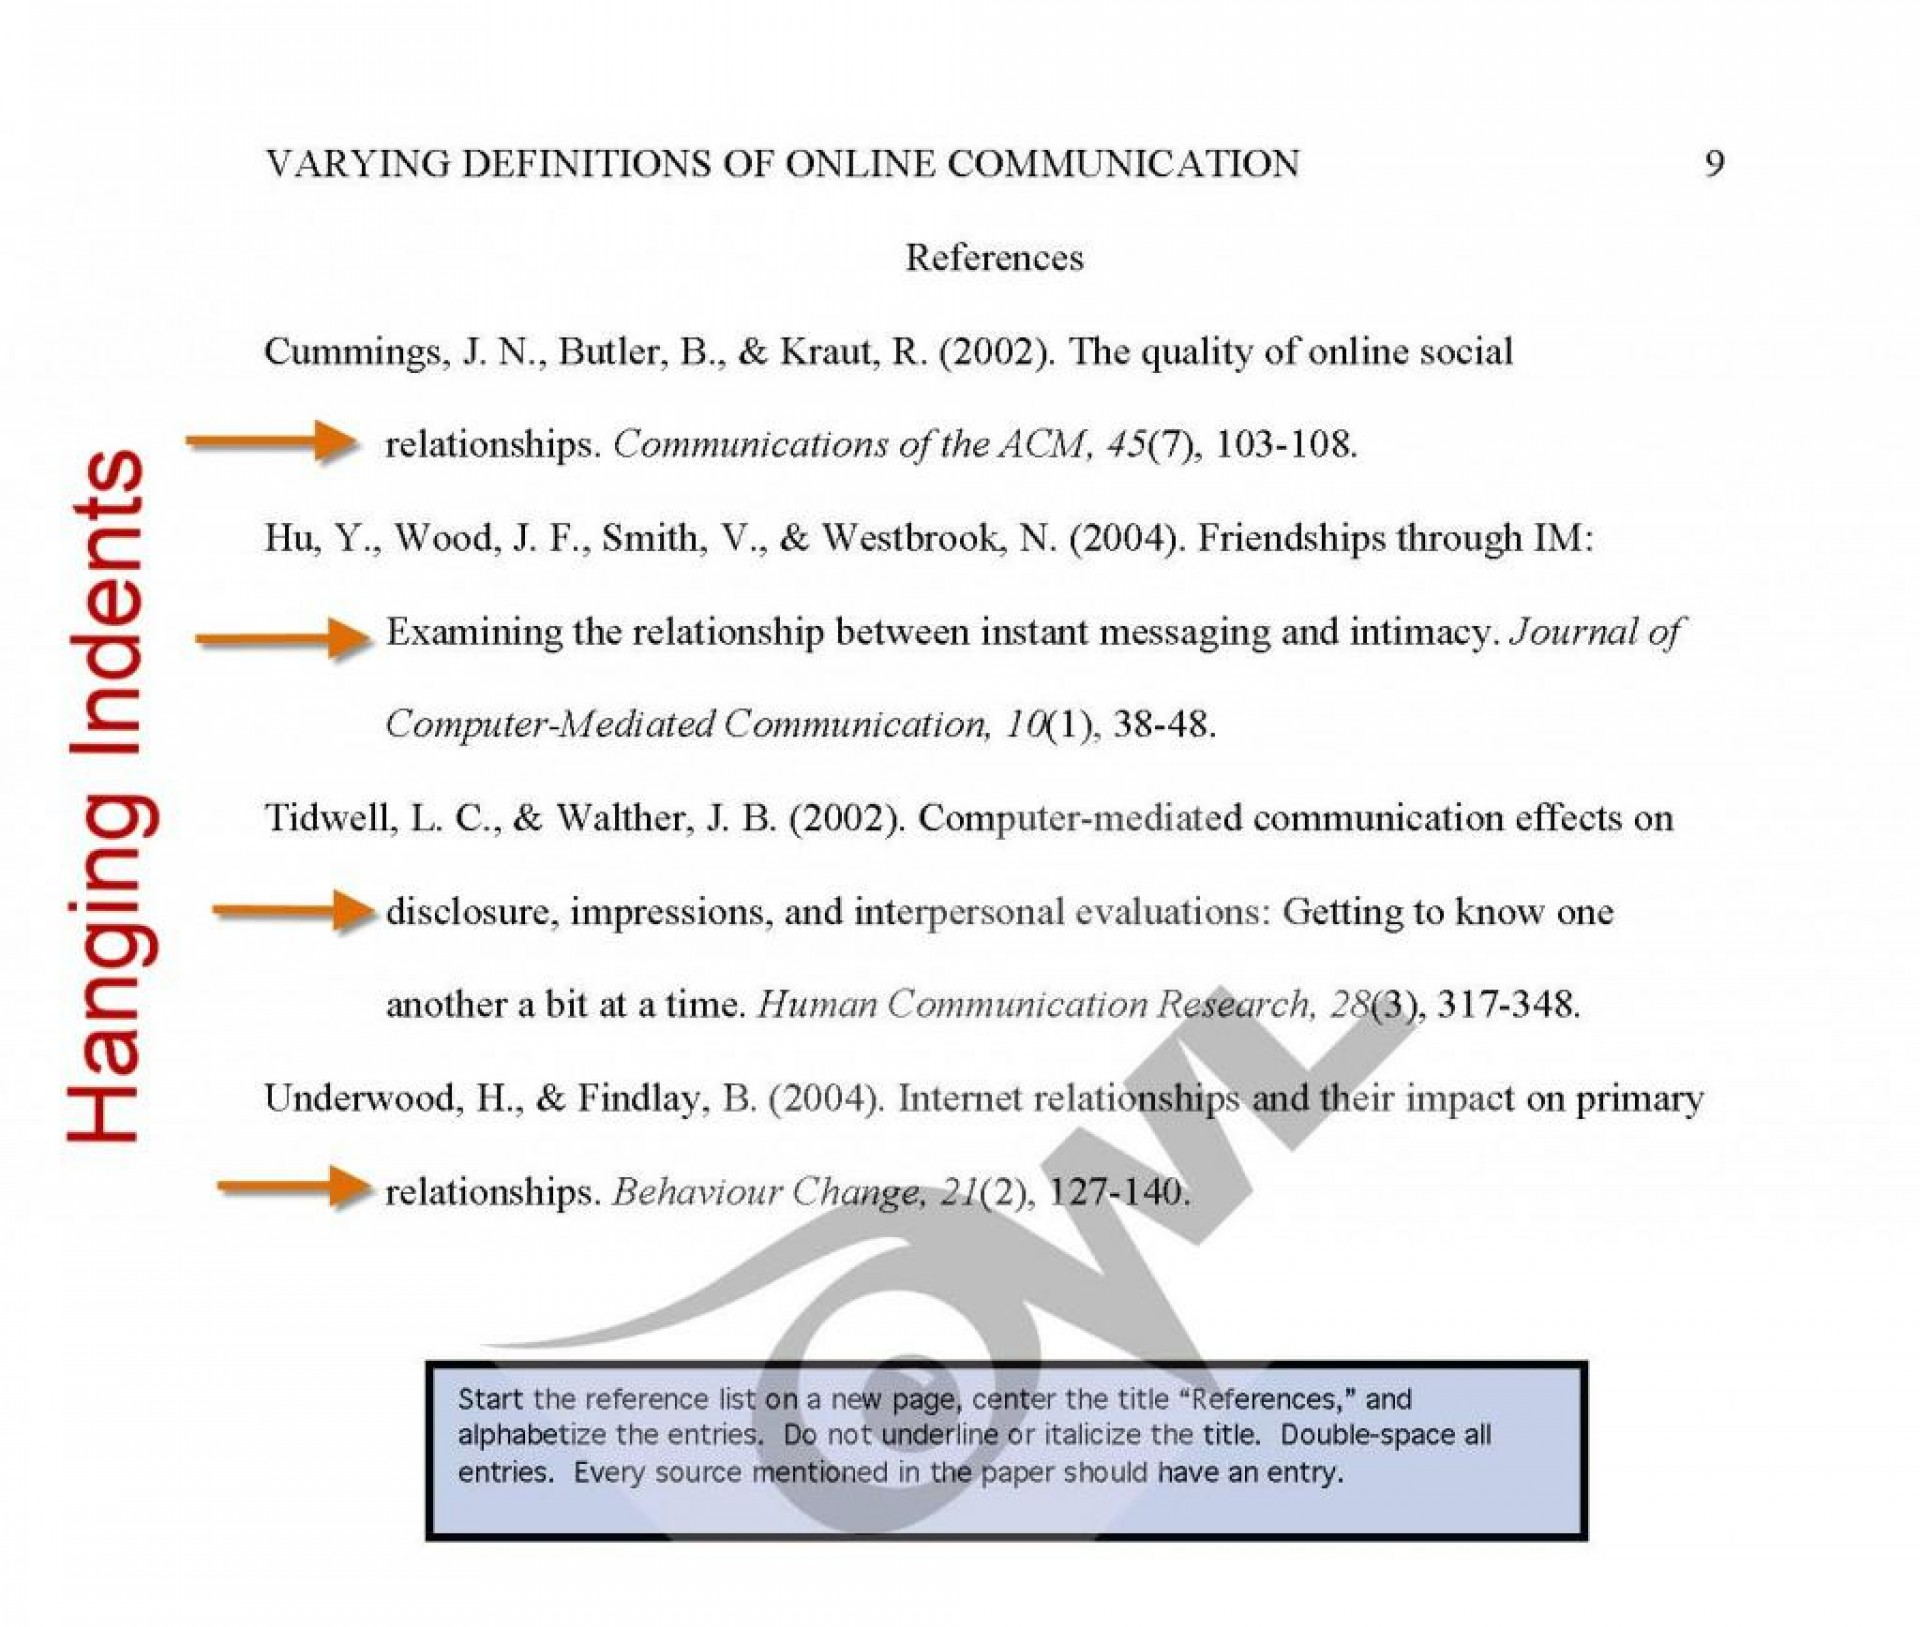 021 Apa Citation Online Research Paper General Rules Best Article 1920